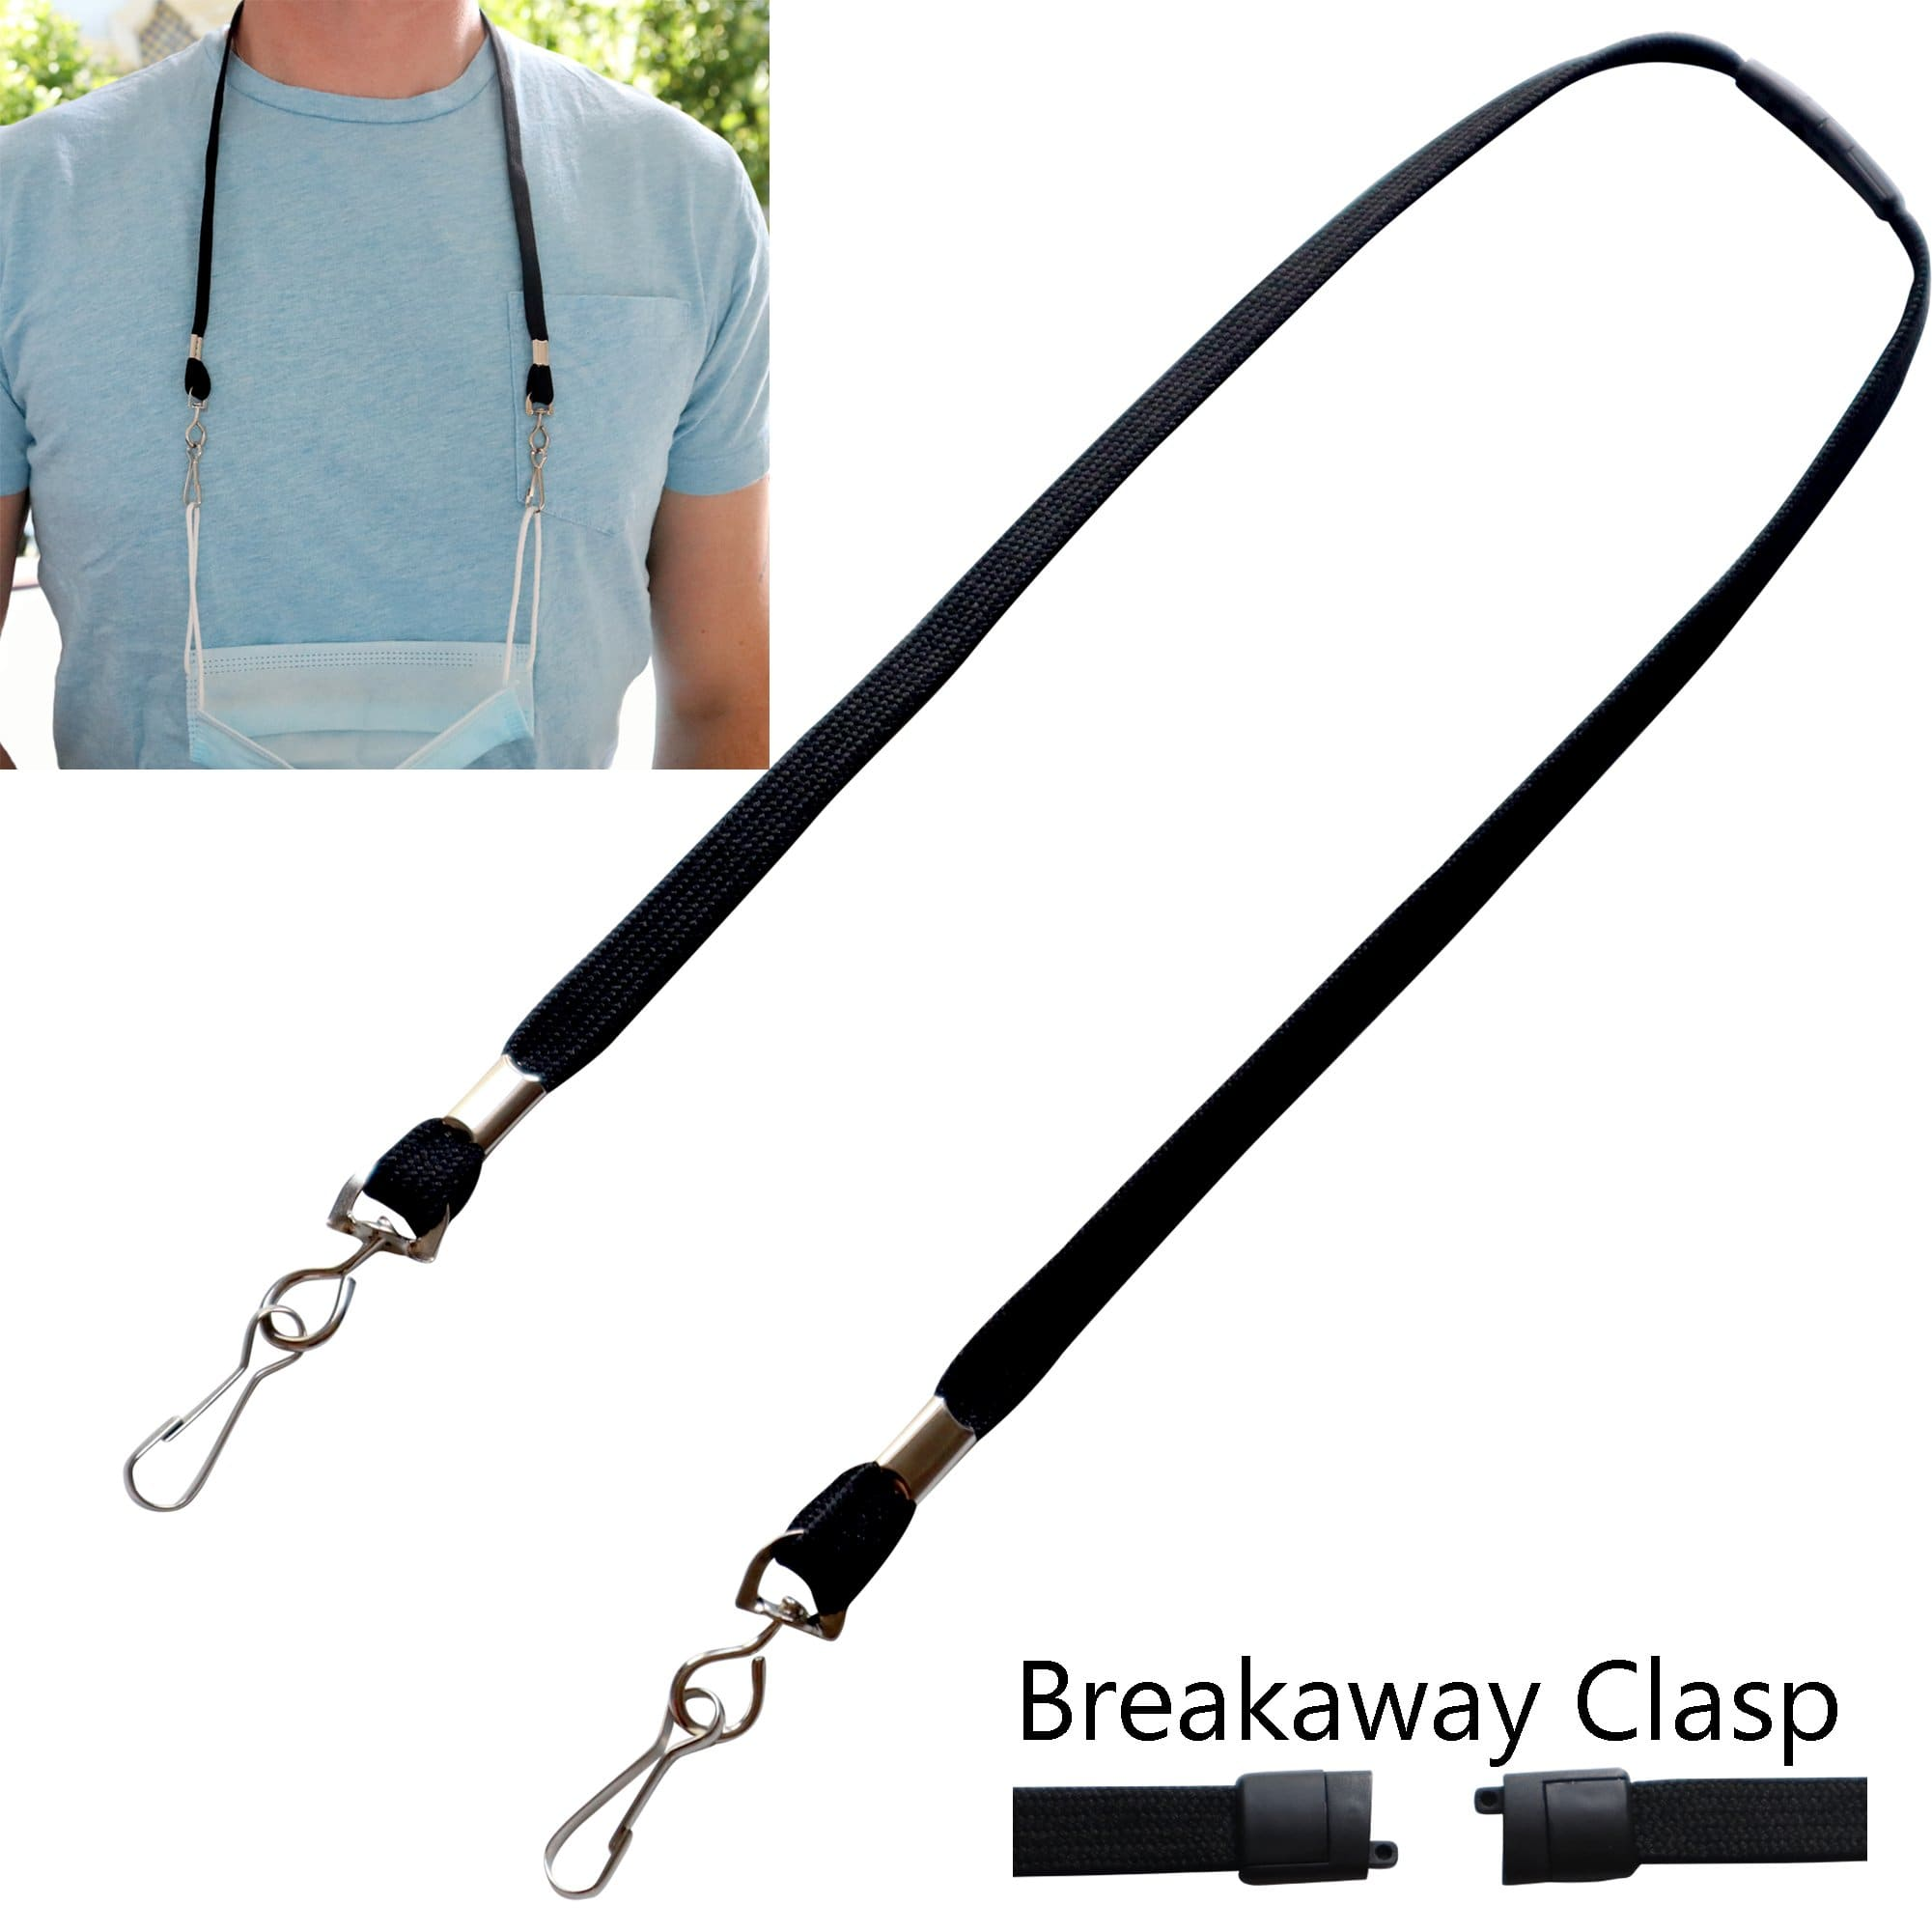 Special Order Adult Size Face Mask Lanyard / Hanger with Safety Breakaway Clasp